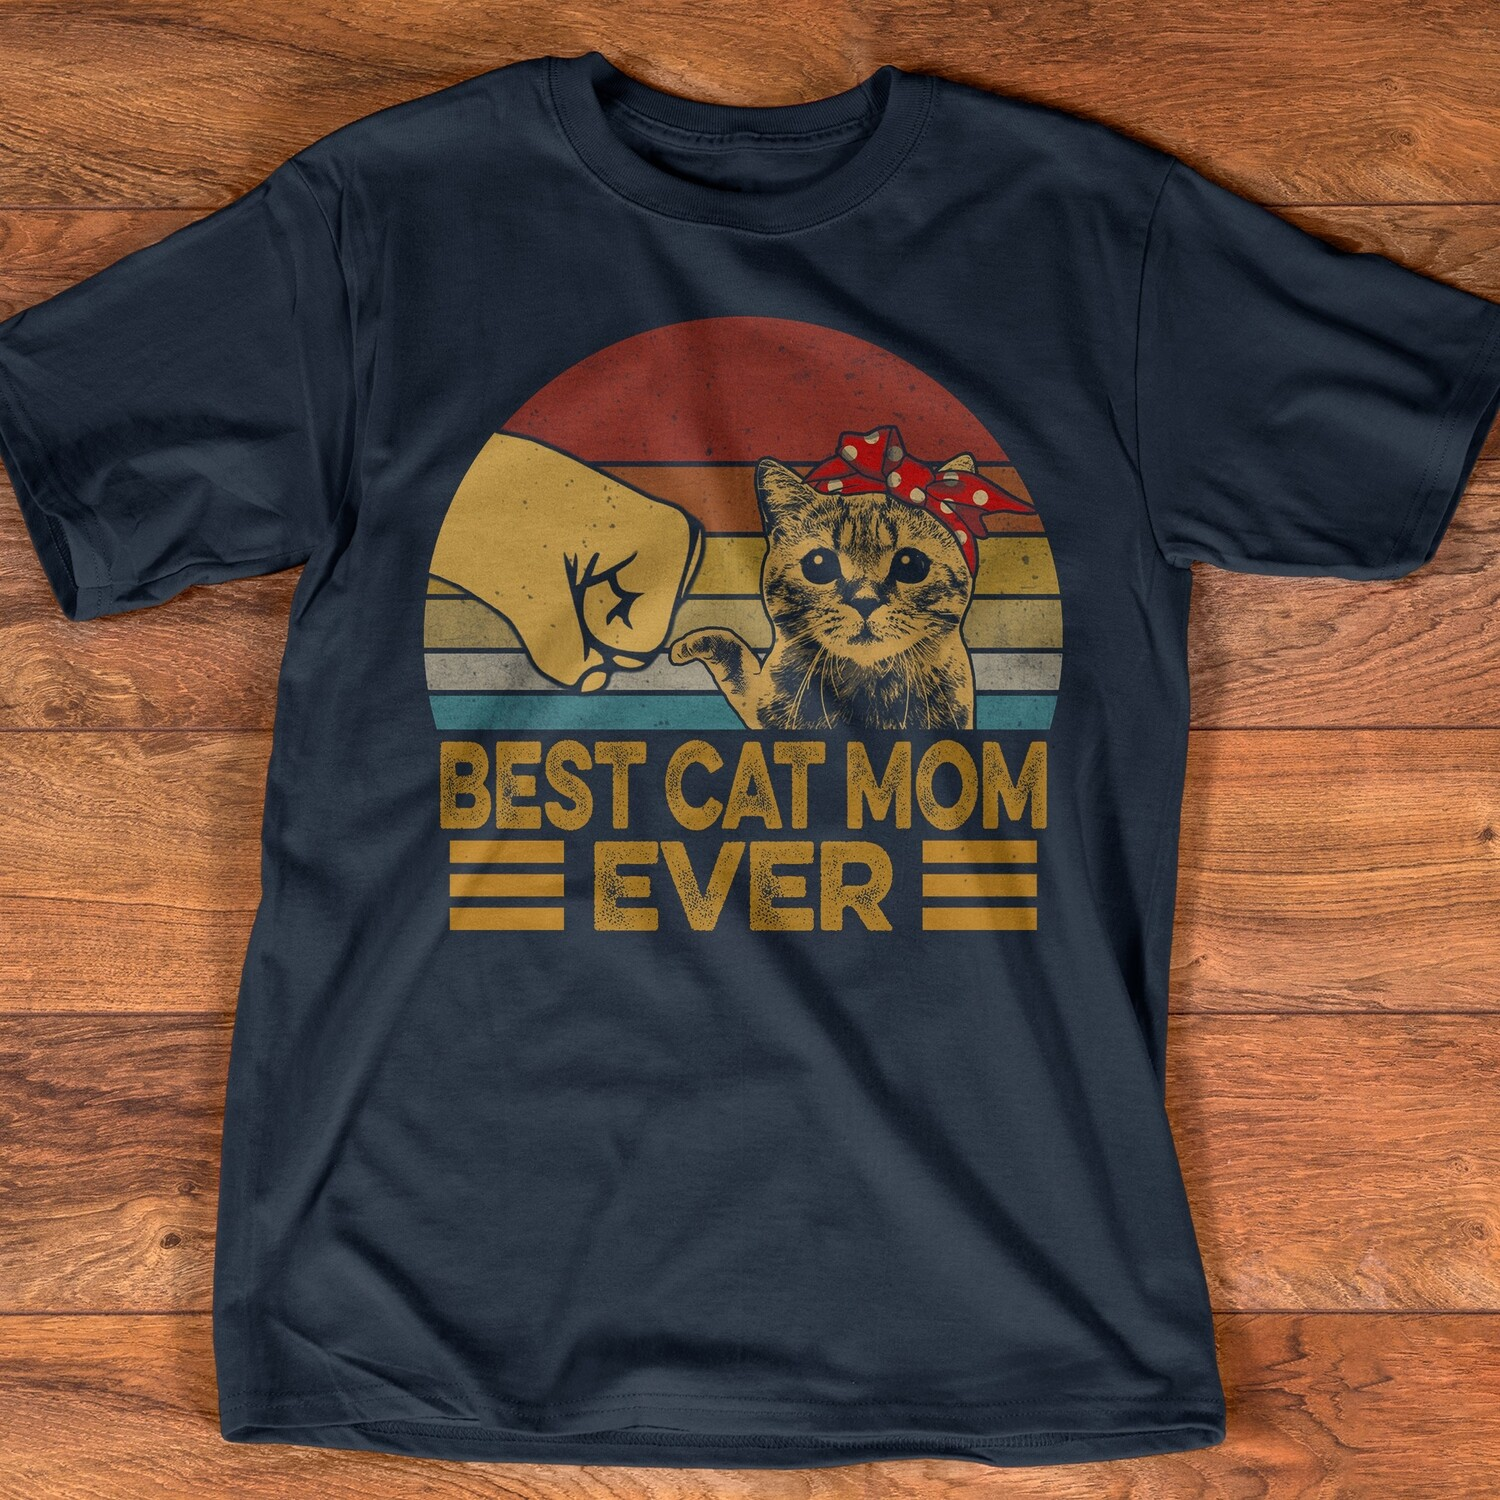 Vintage Best Cat Mom Ever T-Shirt Mother's Day Gift, cat lovers, Best Cat Mom Ever, Vintage Best Cat Mom, cat mom, cat mom gift, cat mom ever tshirt, best cat mom, mother of cats, mother of cat tee